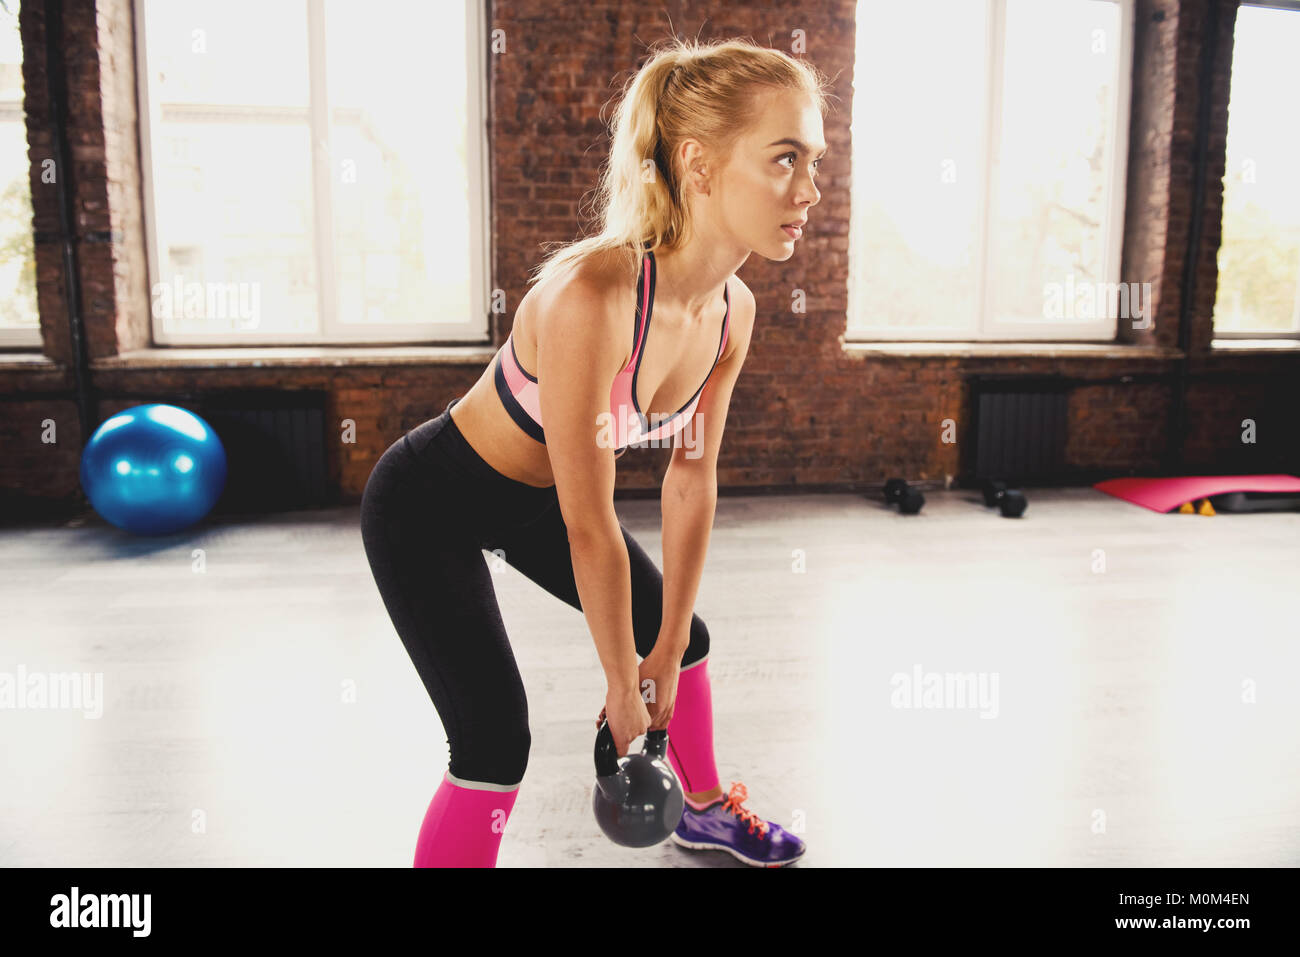 Blonde girl working out at the gym with a kettlebell. crossfit exercise - Stock Image